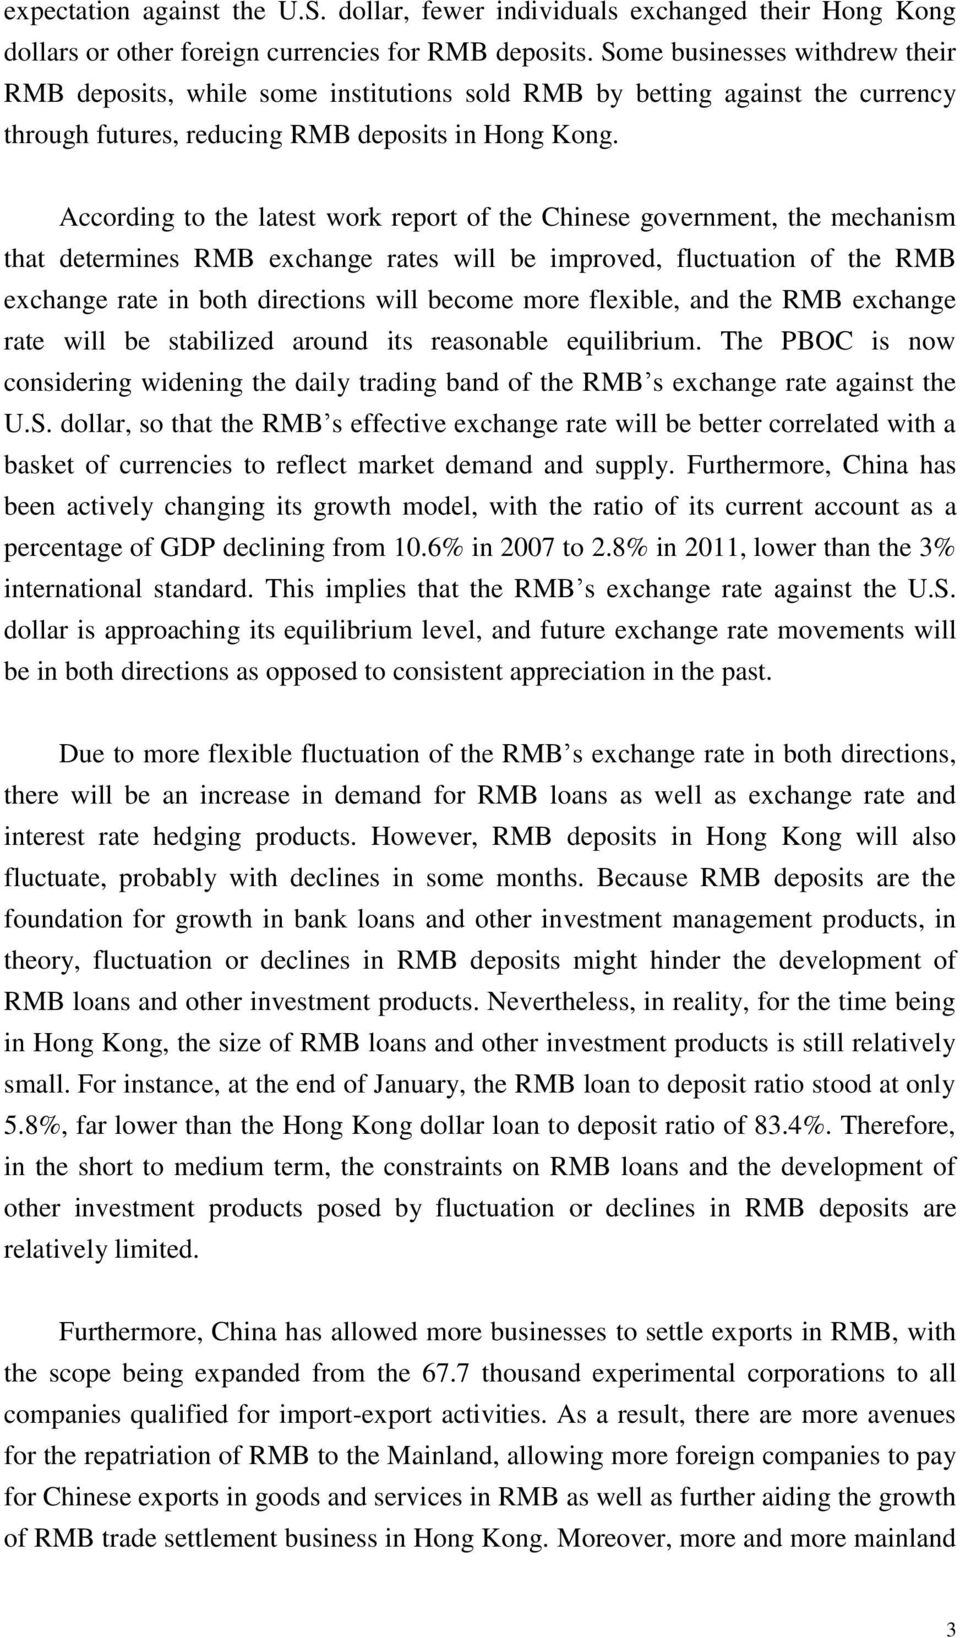 According to the latest work report of the Chinese government, the mechanism that determines RMB exchange rates will be improved, fluctuation of the RMB exchange rate in both directions will become